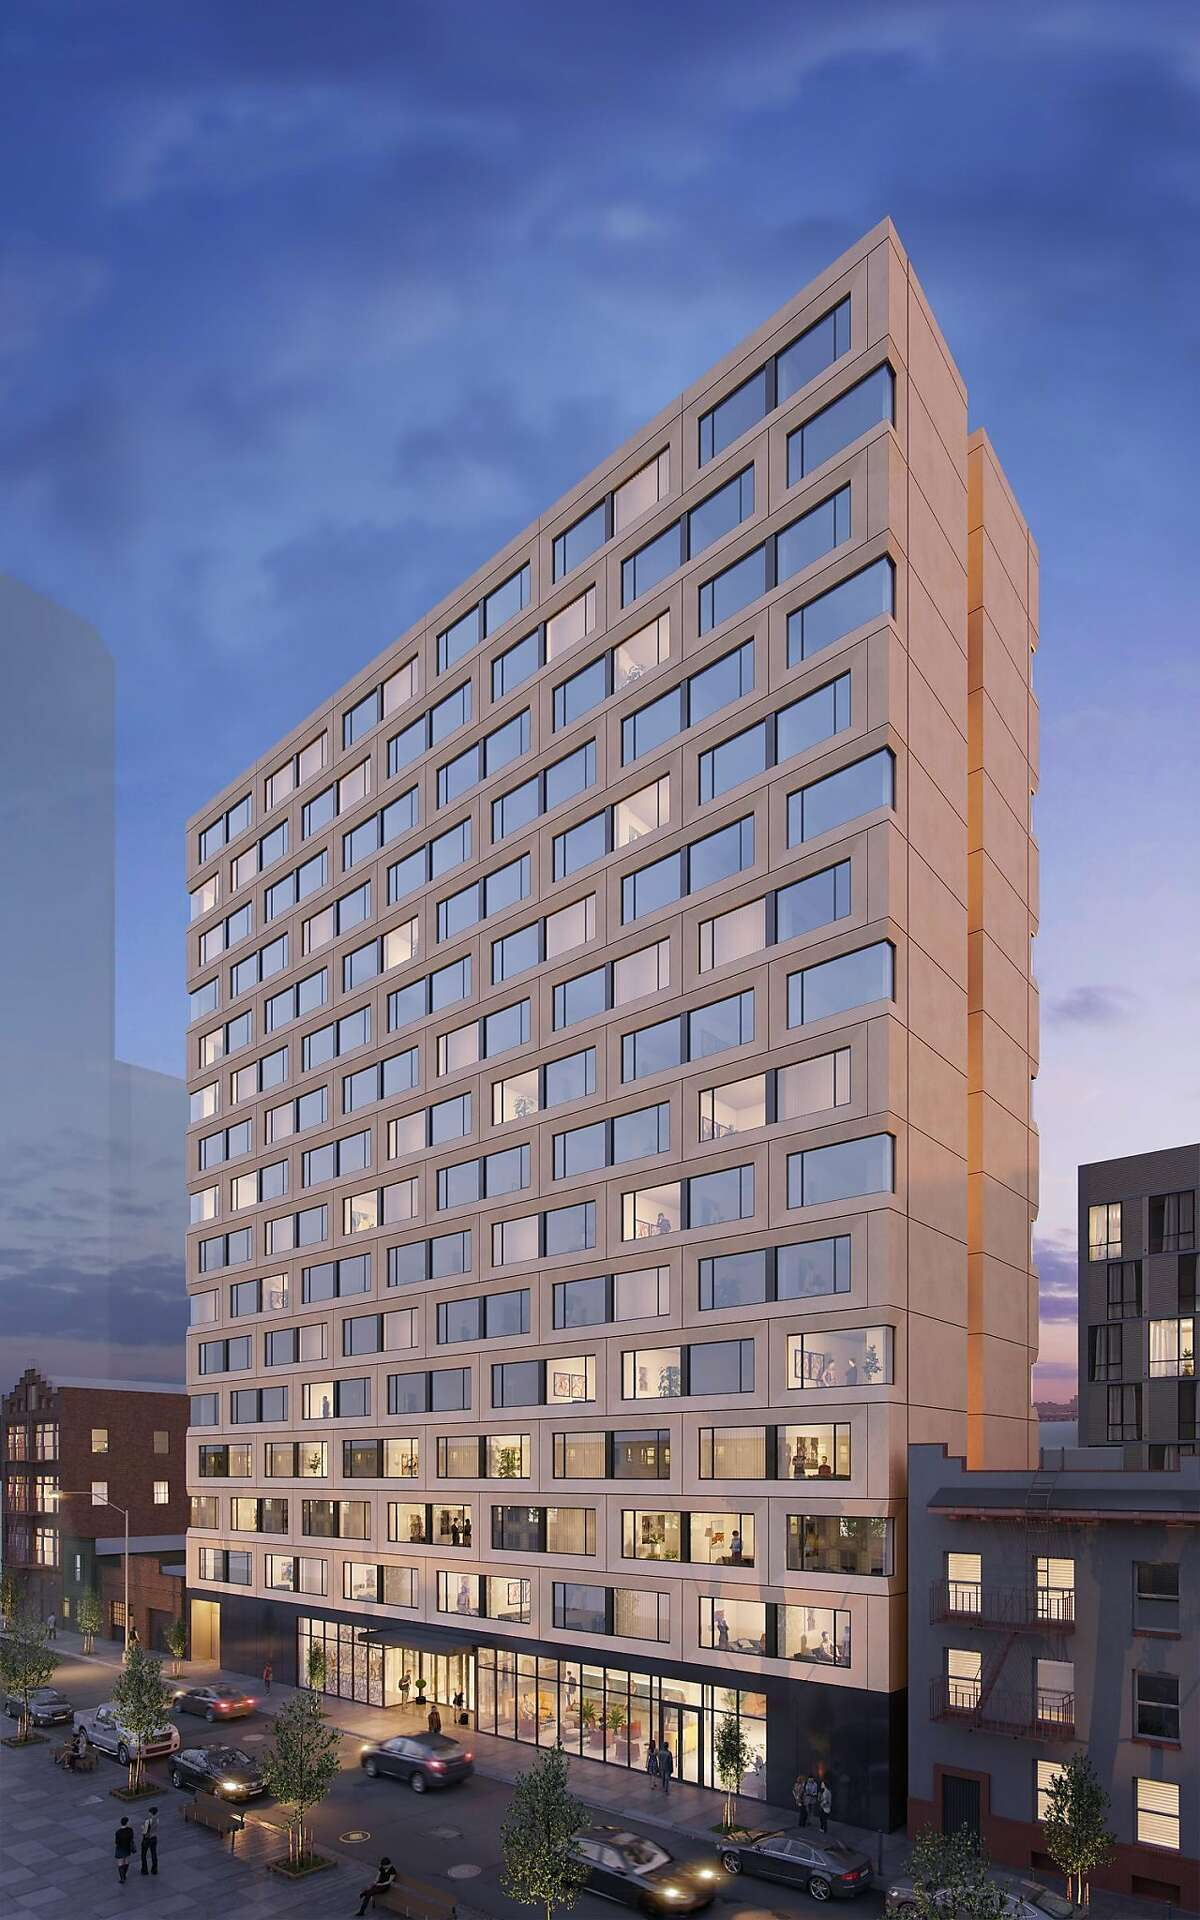 An artist's rendering depicts the view of the co-living structure under construction at 457 Minna Street in San Francisco, Calif.